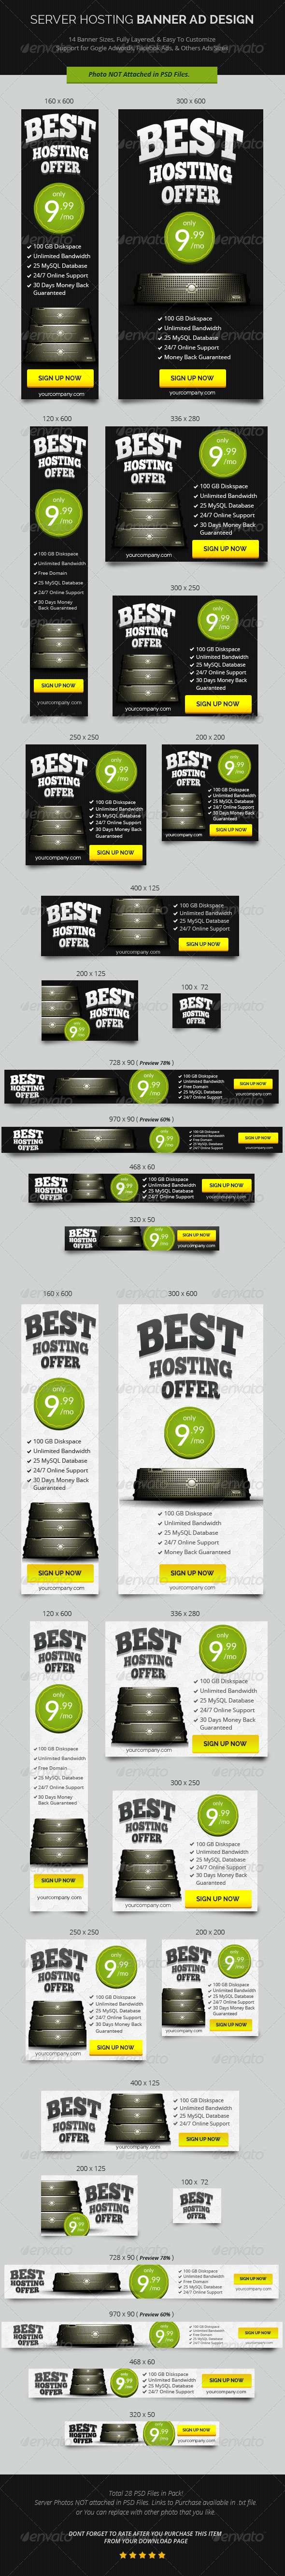 GraphicRiver Best Hosting Offer Banner ad Design 7467958